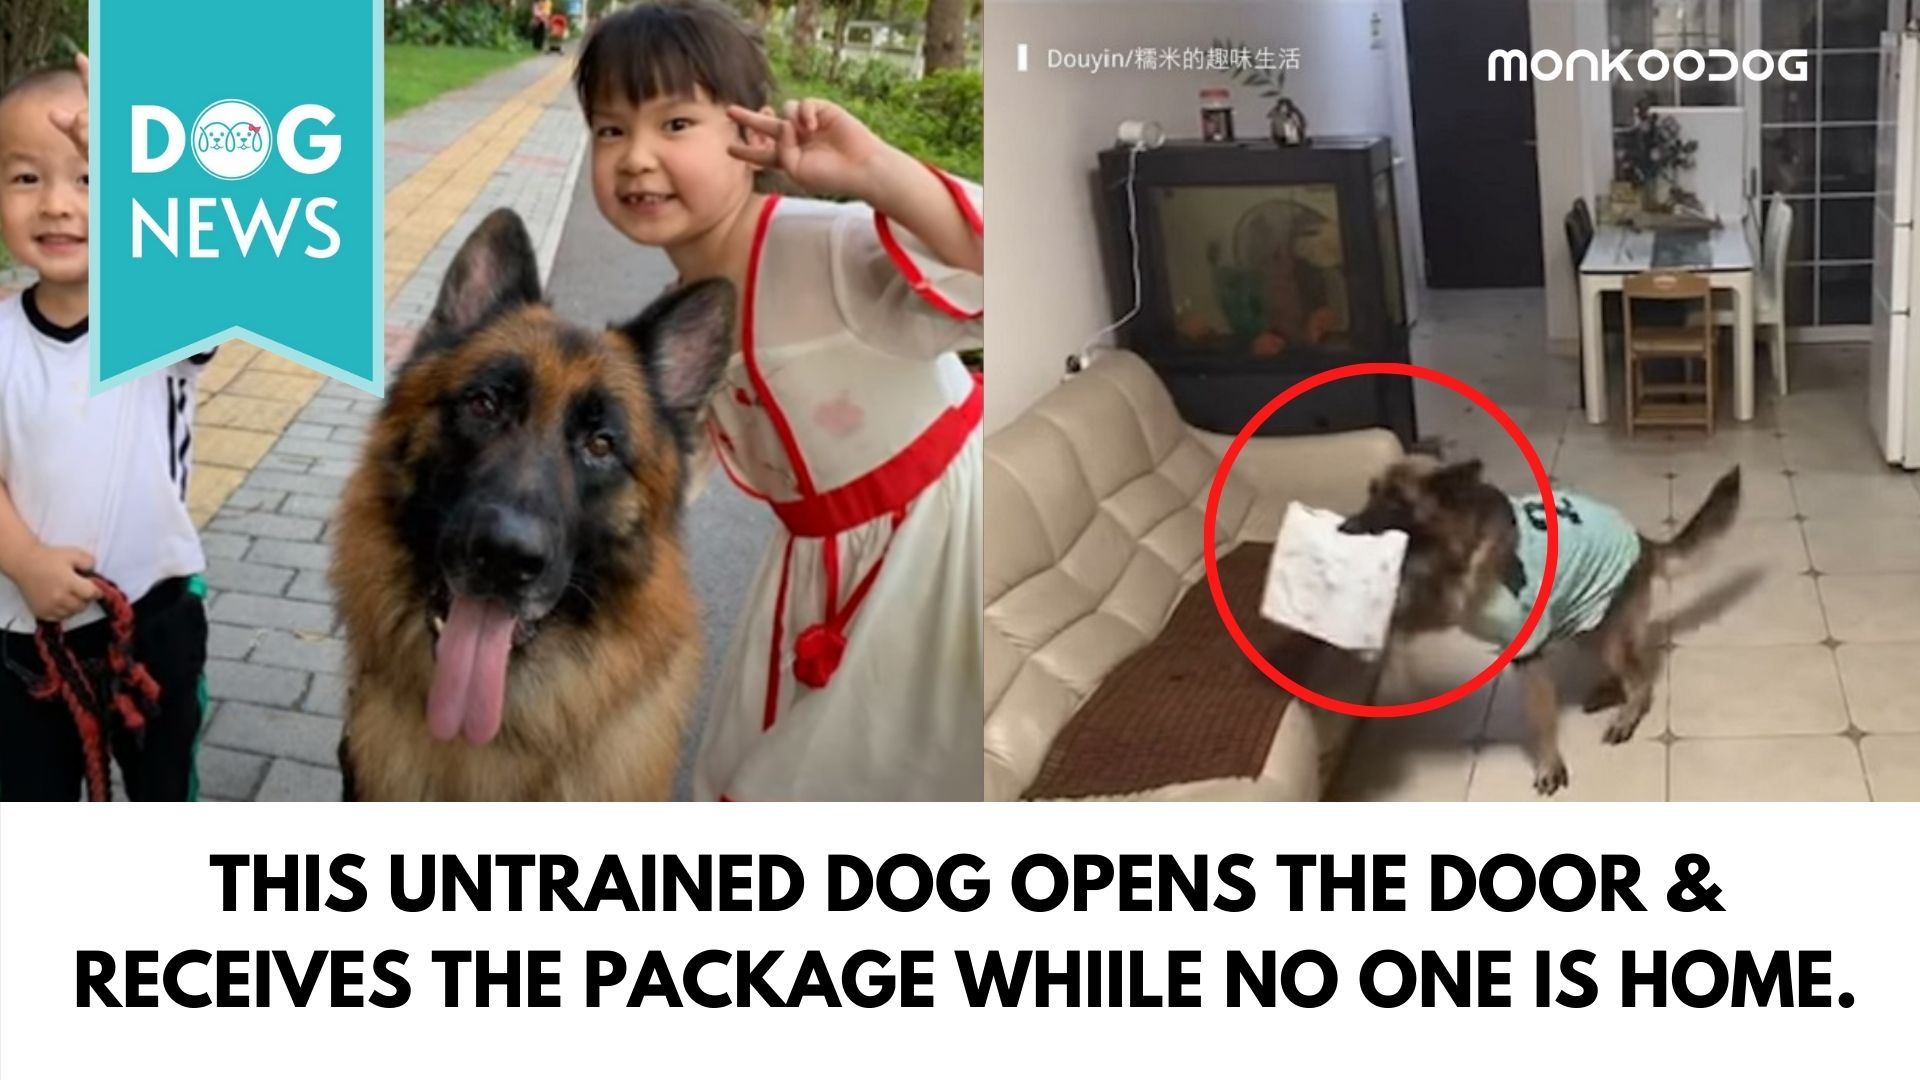 This untrained dog opens the door & receives to package when no one is home.